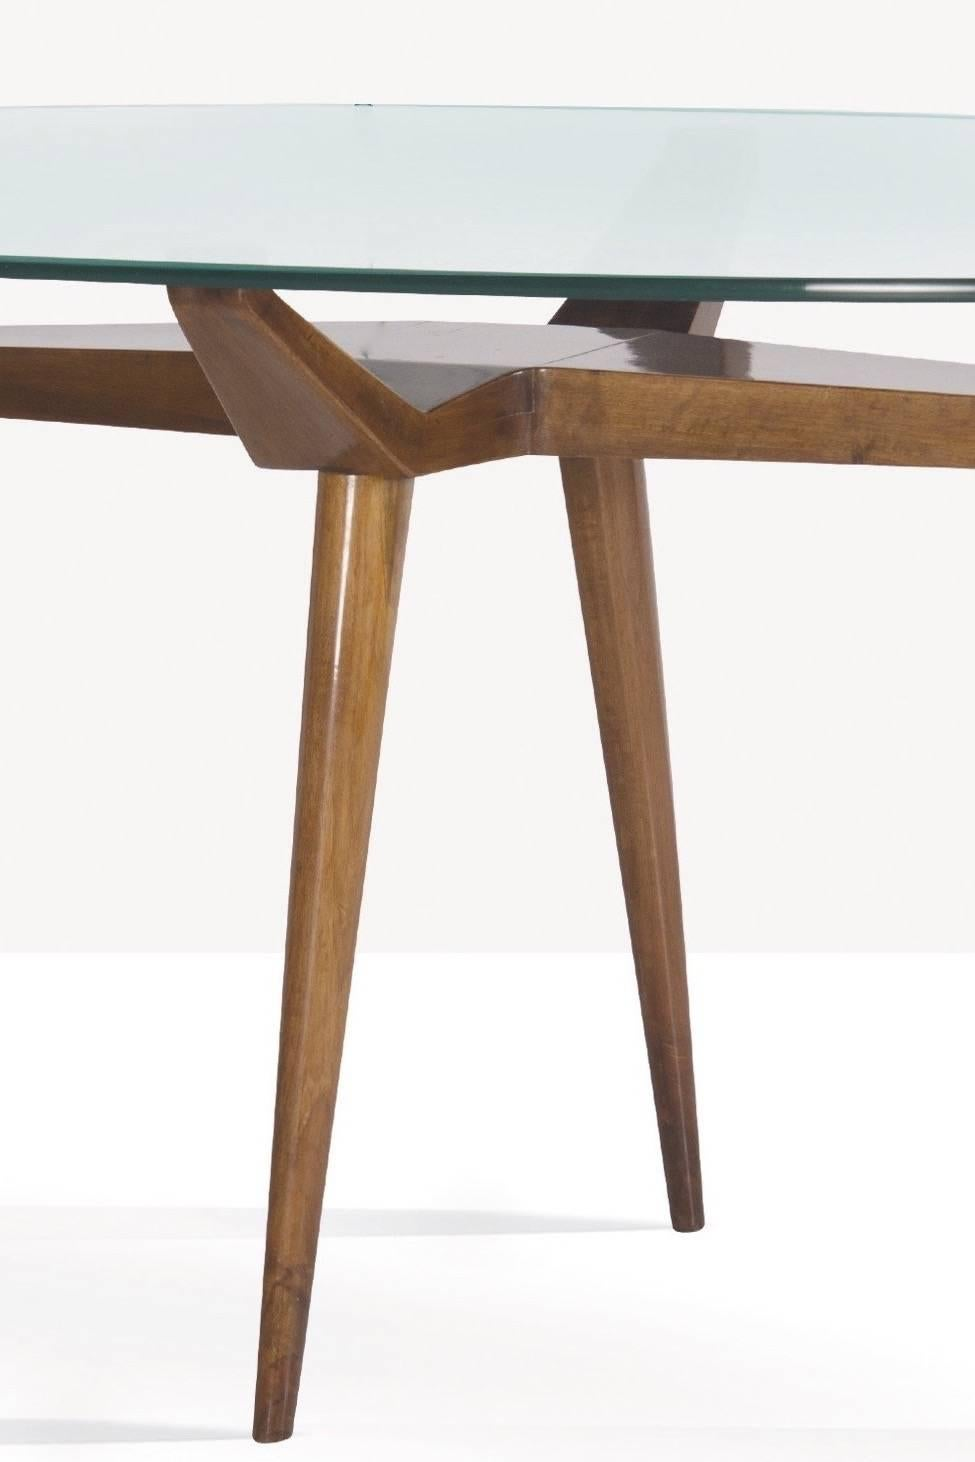 Mid 20th Century Exceptional Pierluigi Giordani Biomorphic Walnut U0026 Glass  Dining Table Italy 1955 For